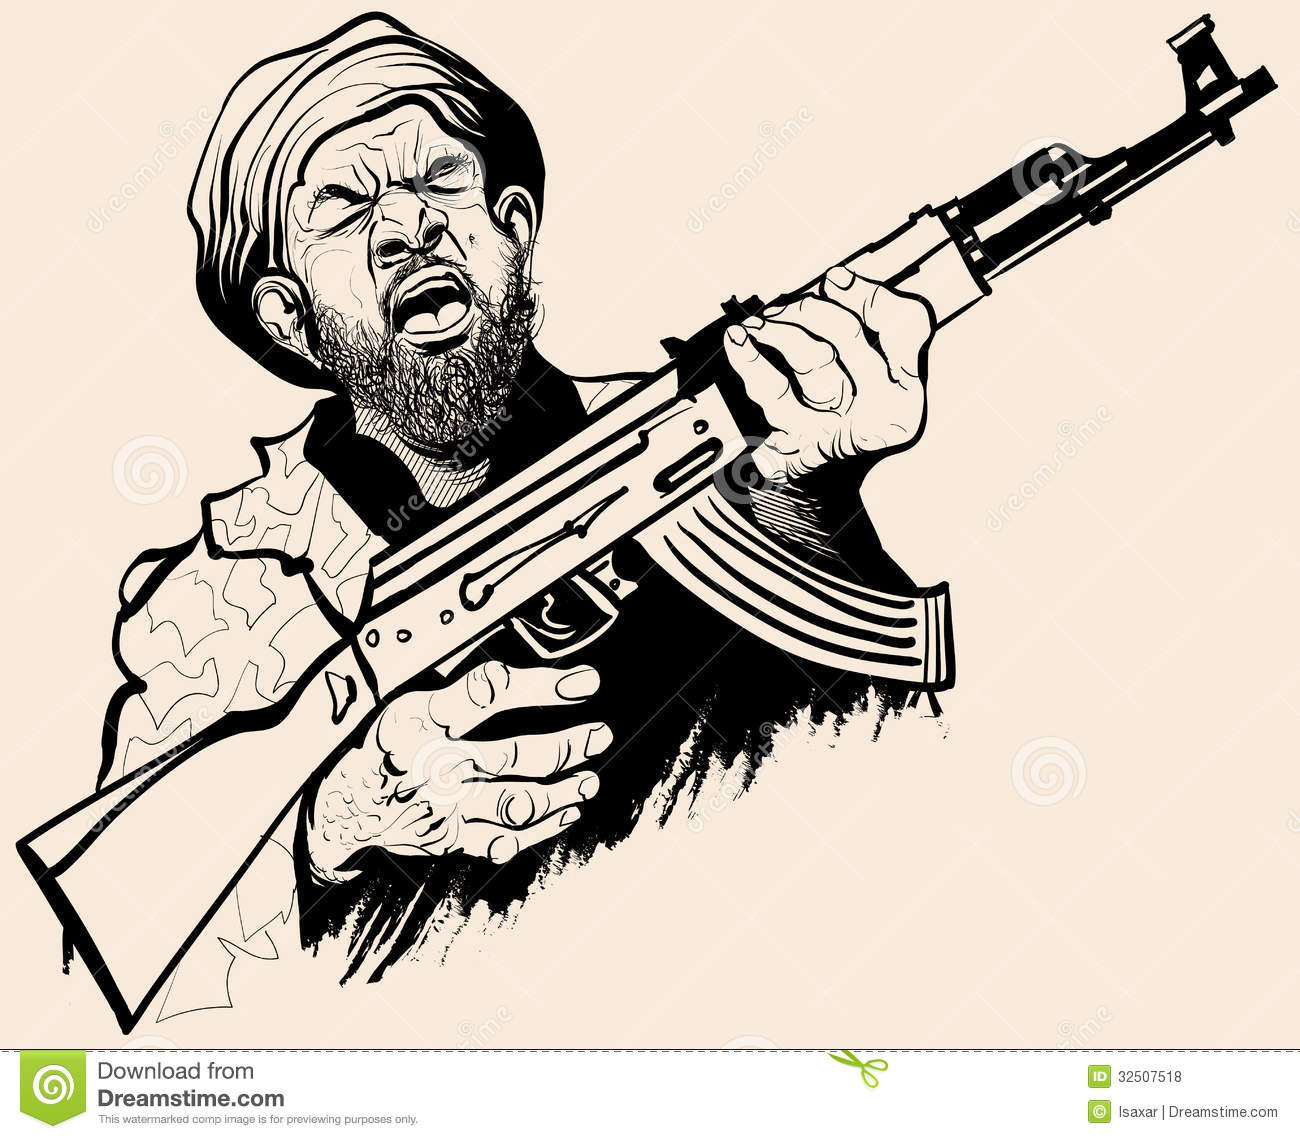 Caricature Of A Terrorist Royalty Free Stock Photos - Image: 32507518